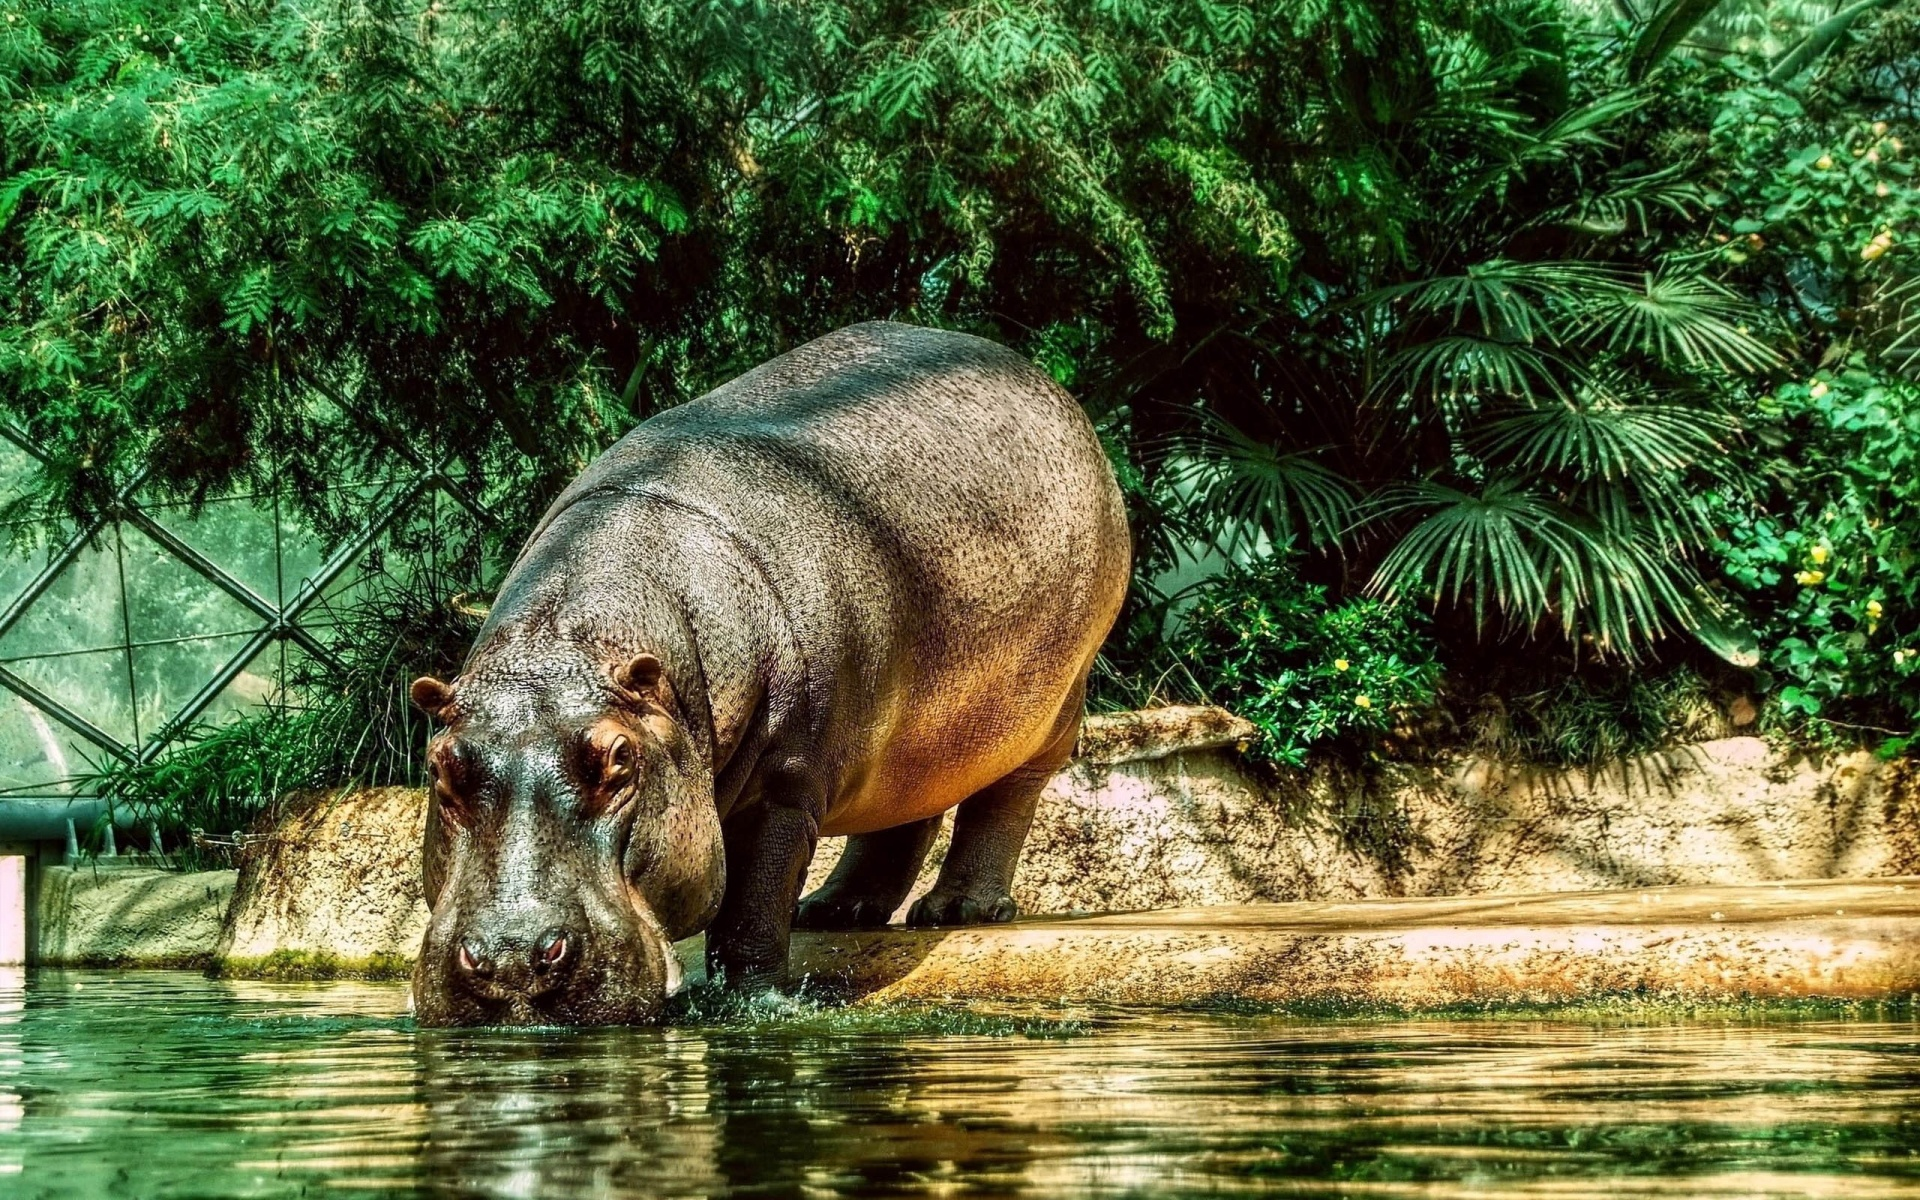 Hippo Drink Water